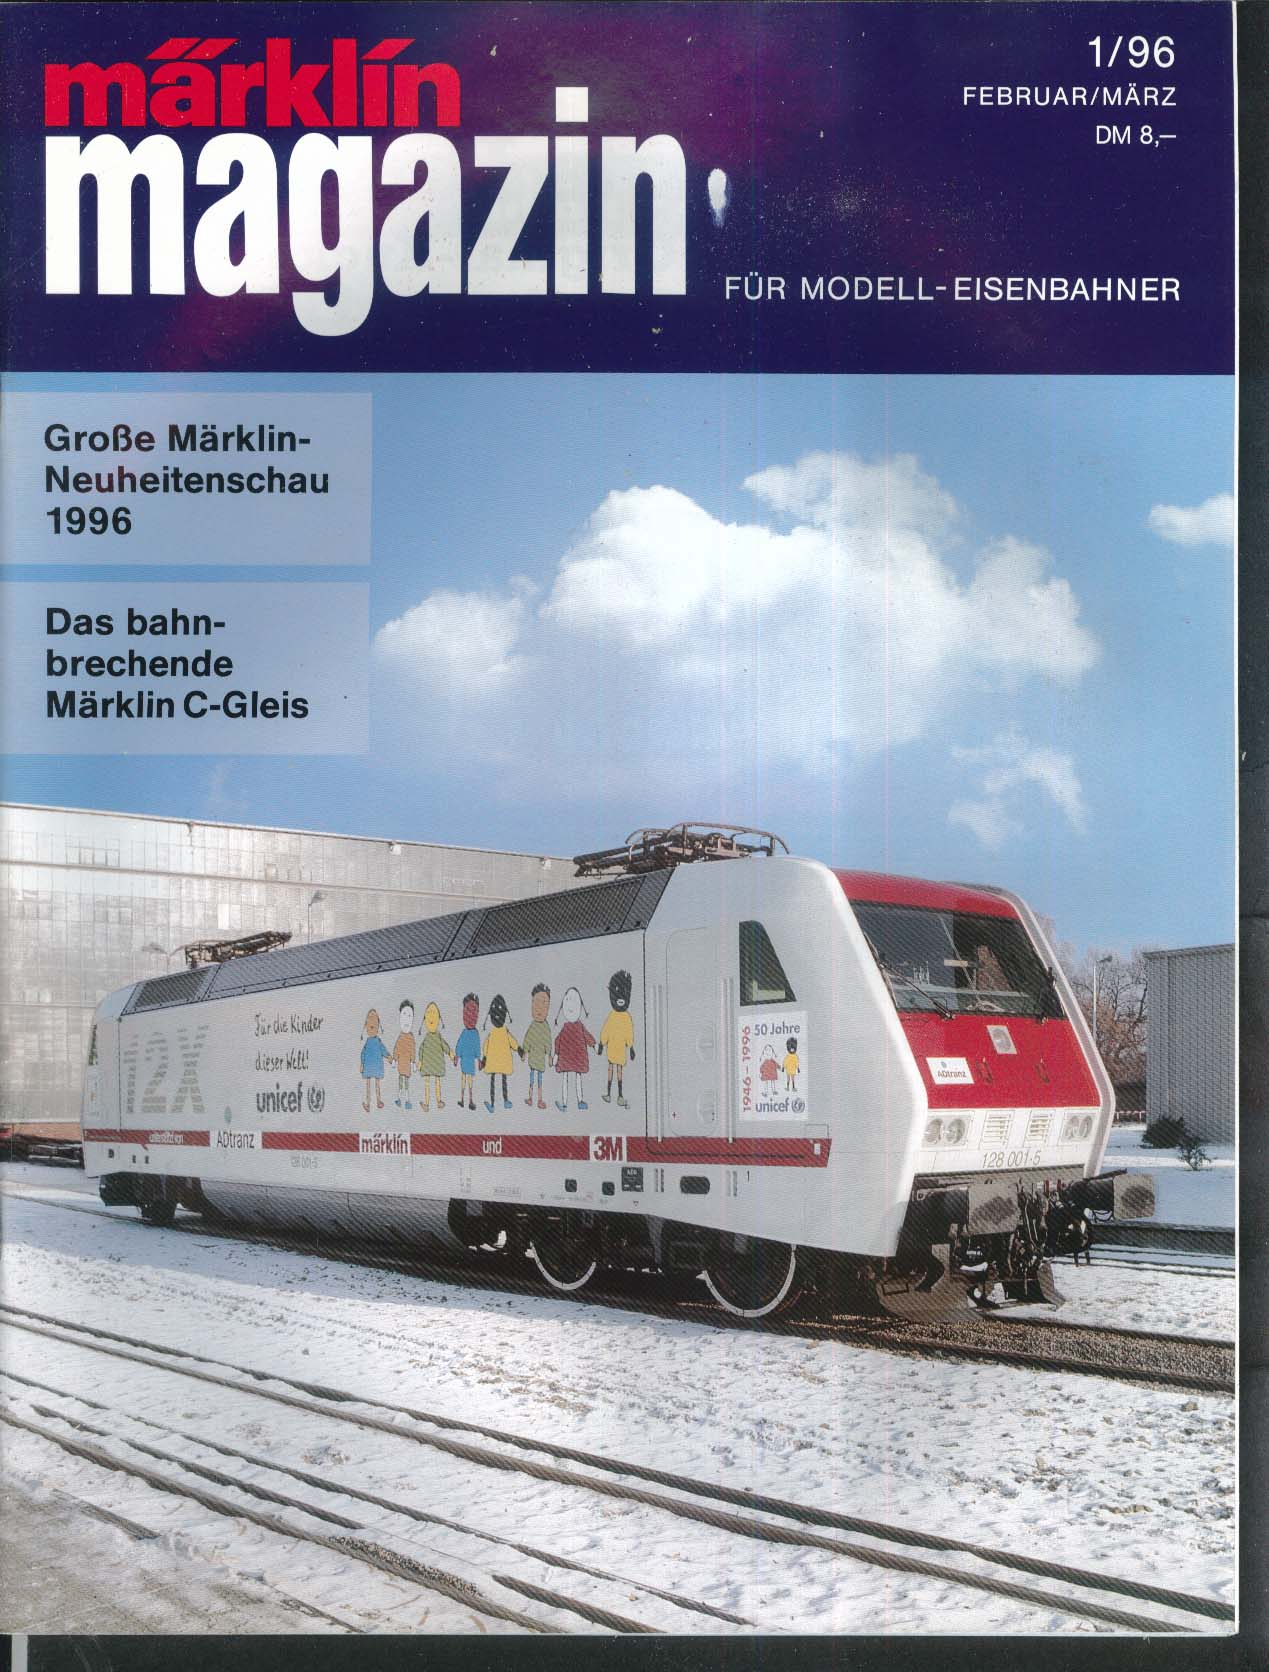 Marklin Magazin Modell-Eisenbahner German-language model train magazine 1 1996